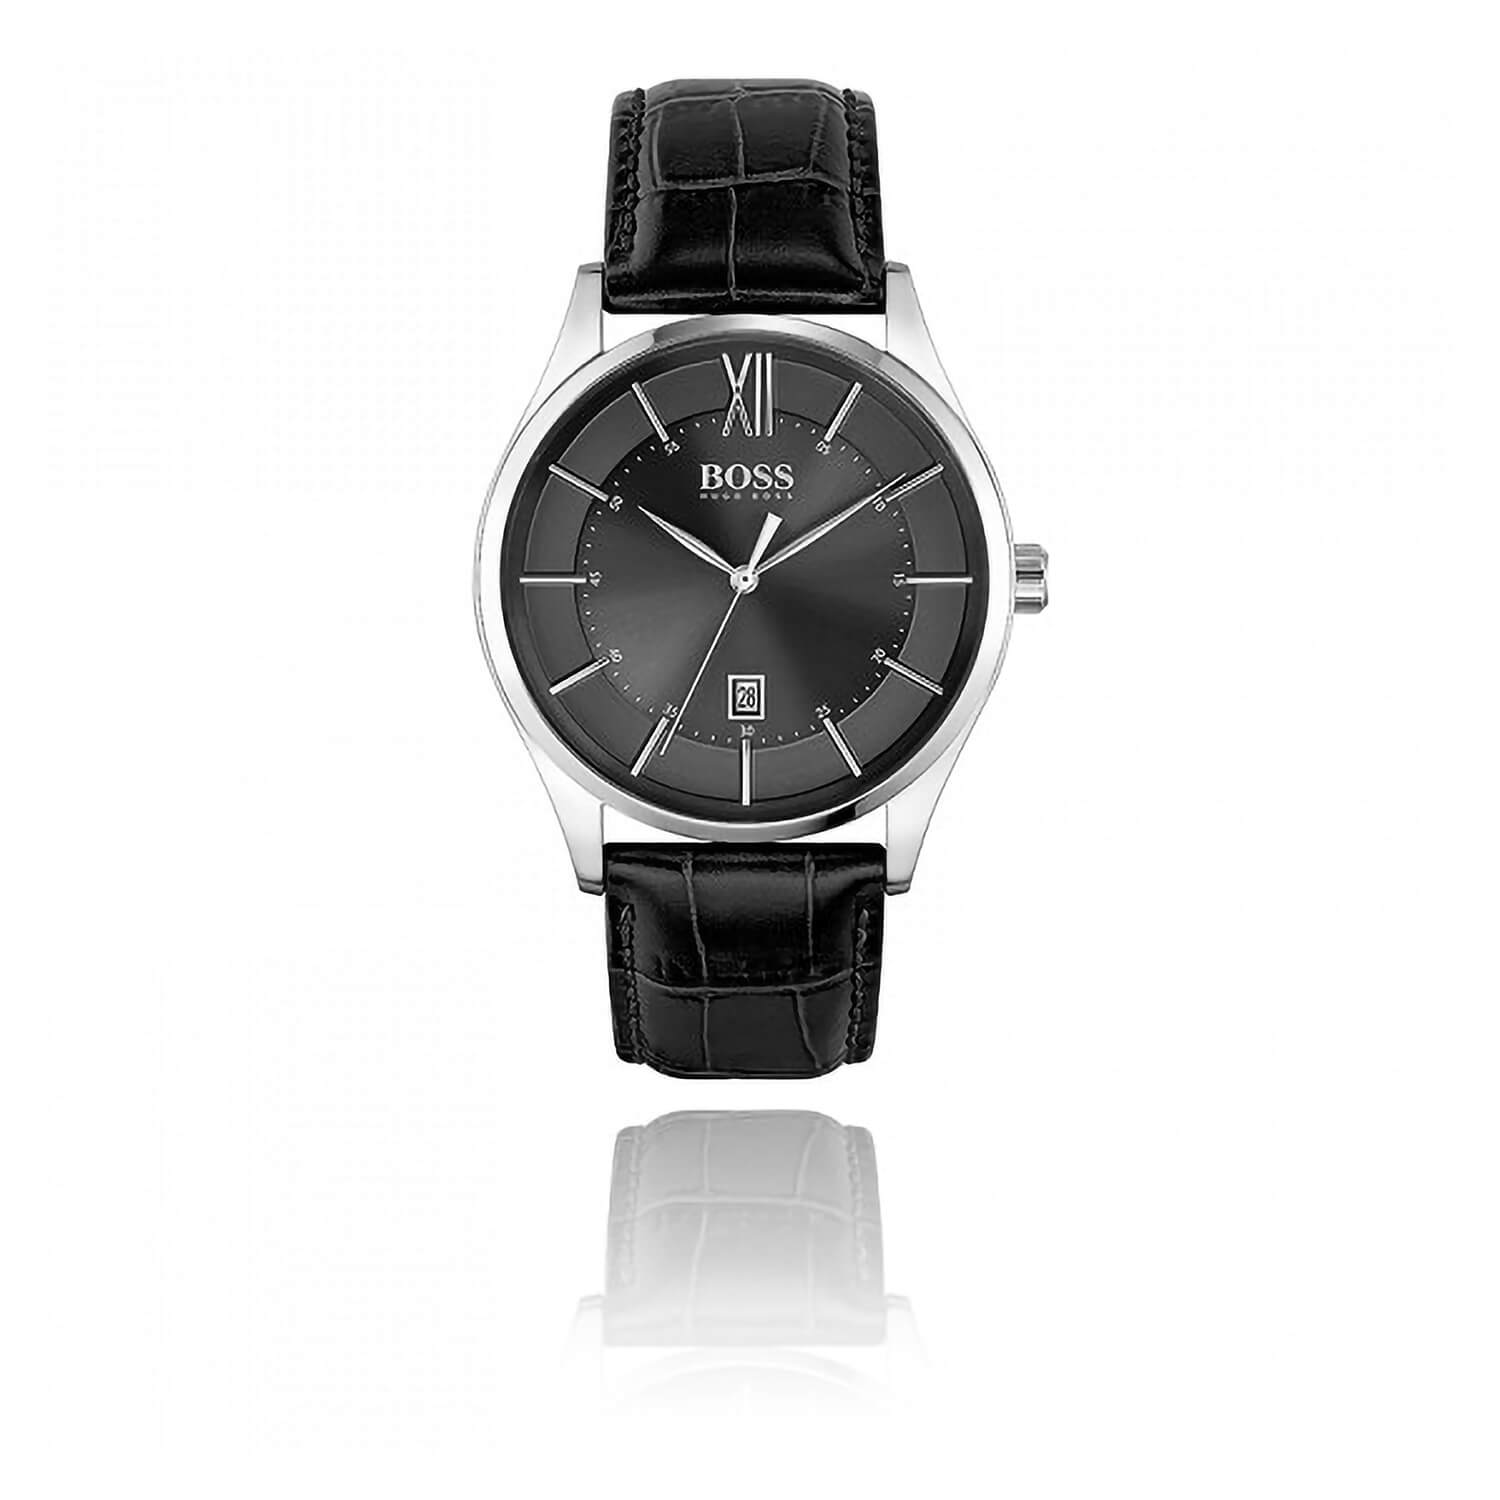 H.BOSS DISTINCTION BLACK DATE FEATURE DIAL BLACK LEATHER STRAP